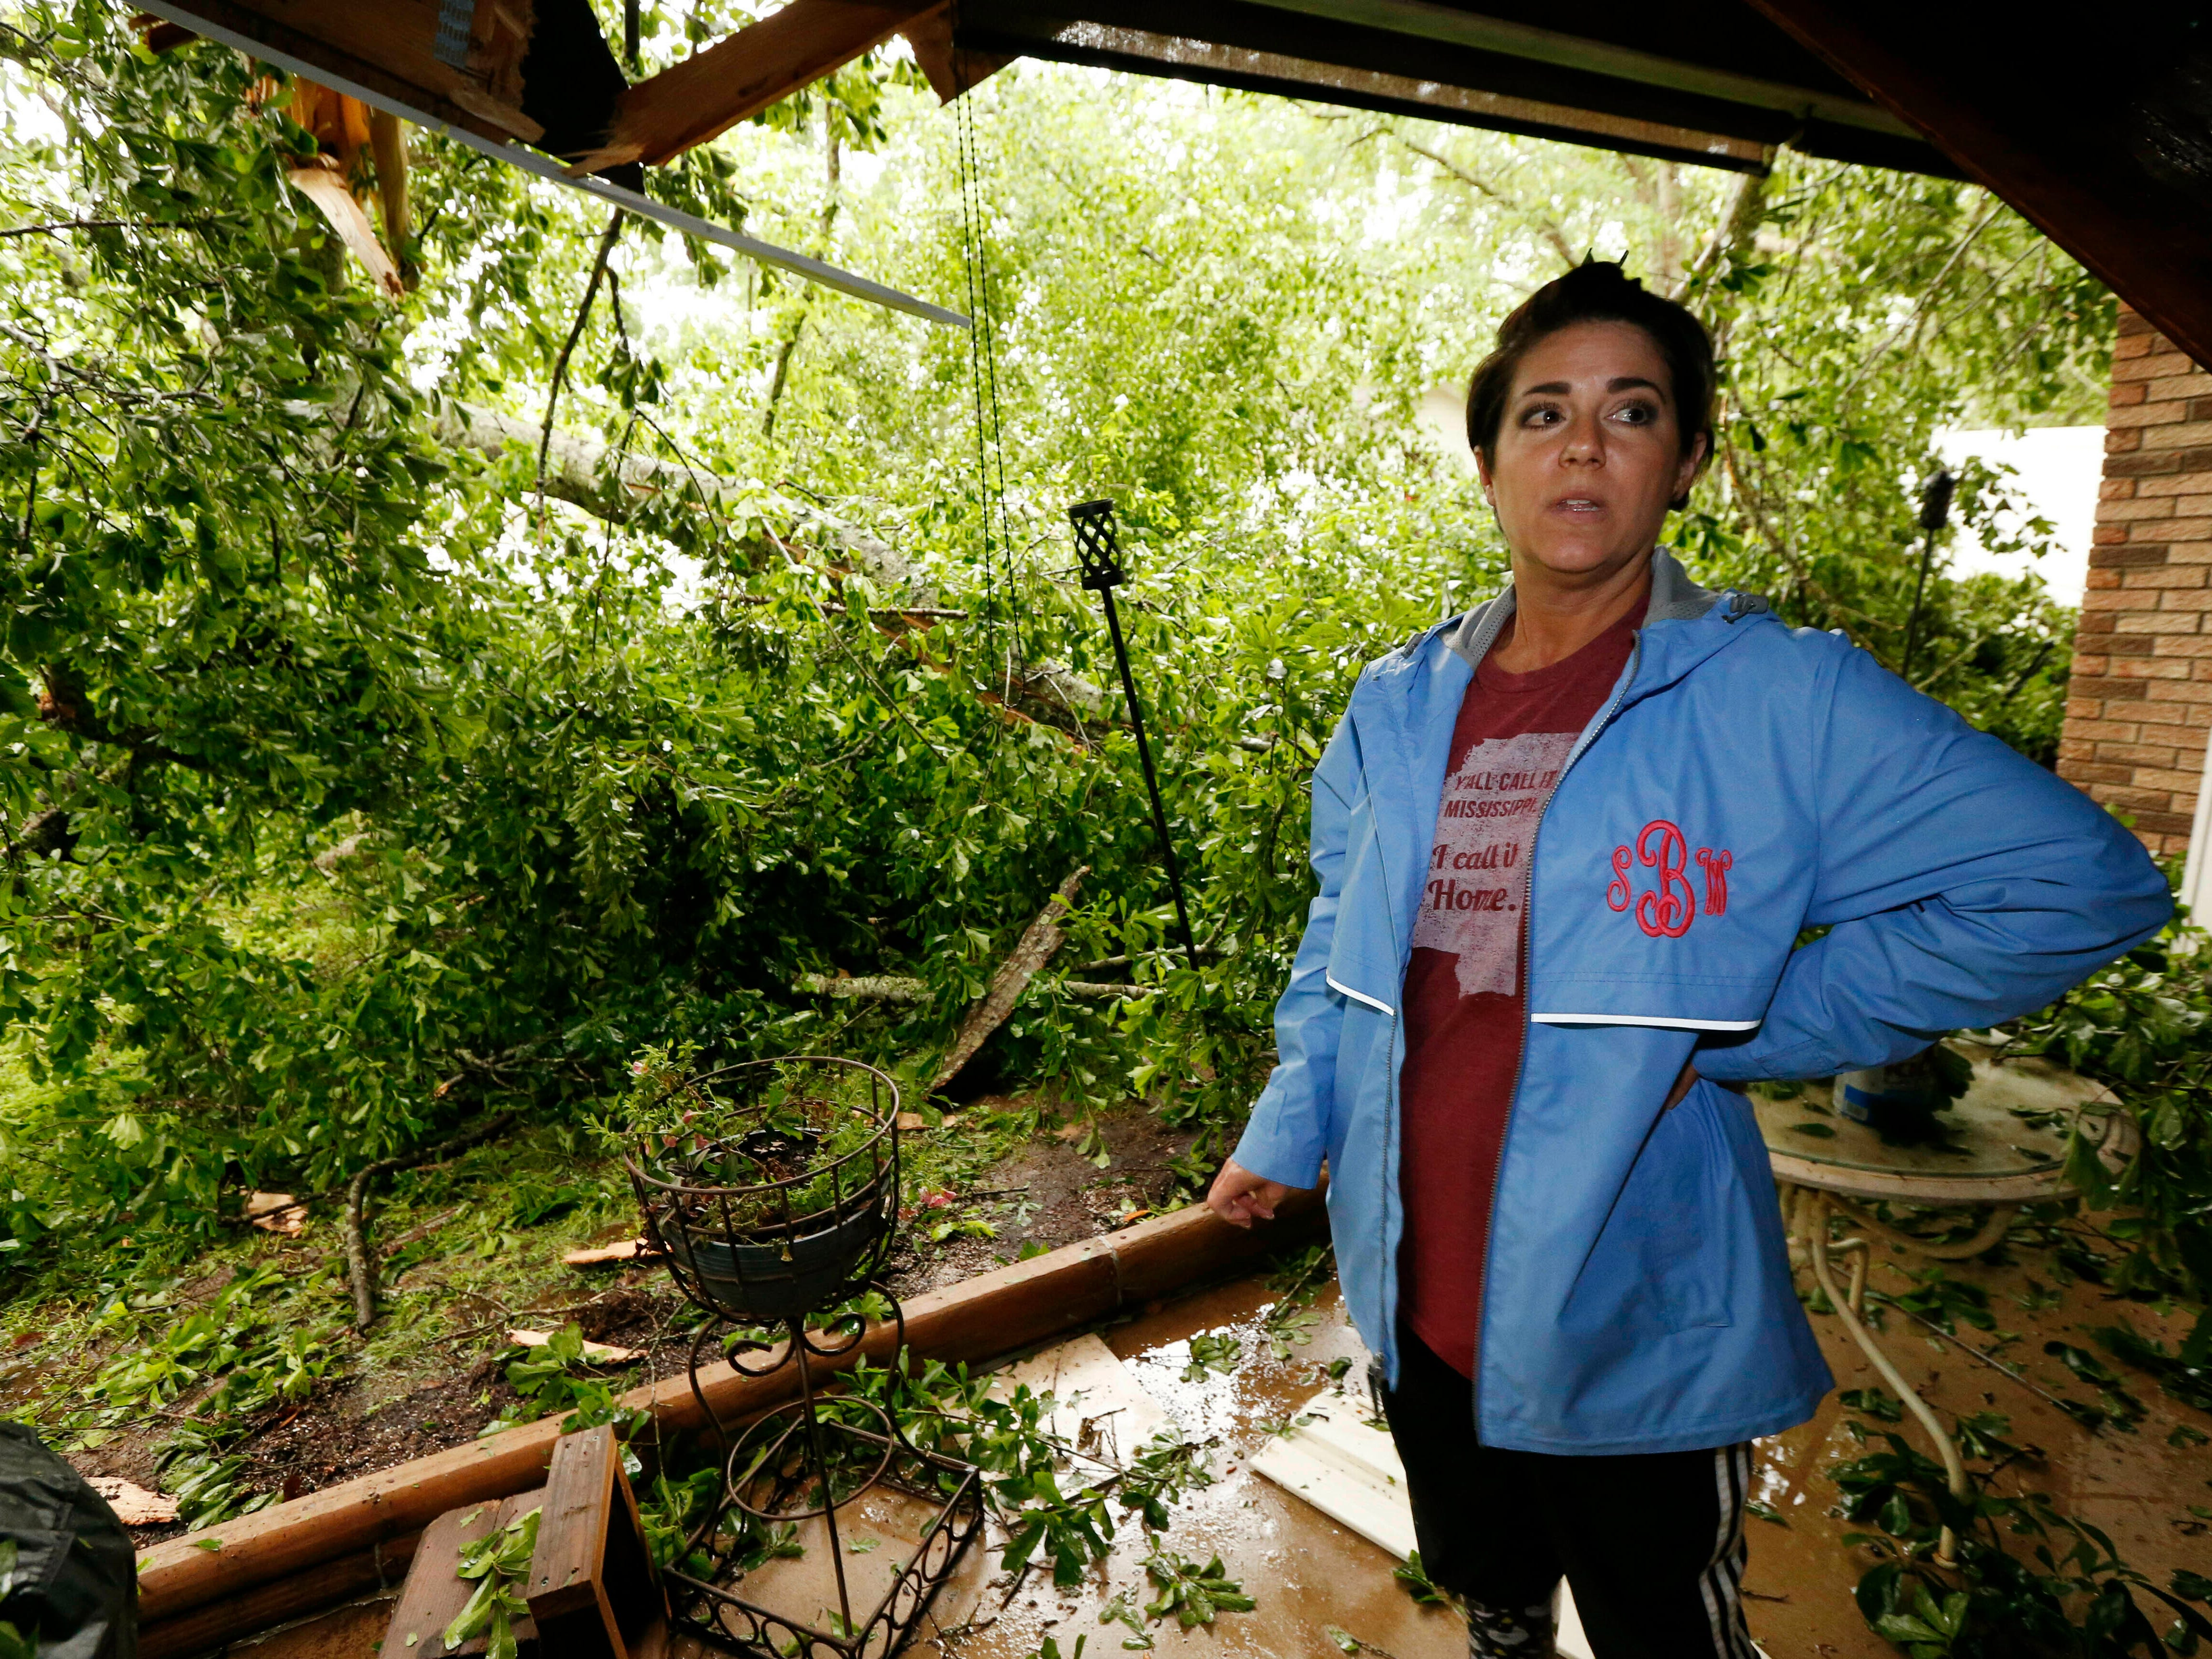 Sonya Banes reacts to a large oak tree that crashed through the patio of her mother's house in Learned, Miss., Thursday, April 18, 2019. Several homes were damaged by fallen trees in the community.